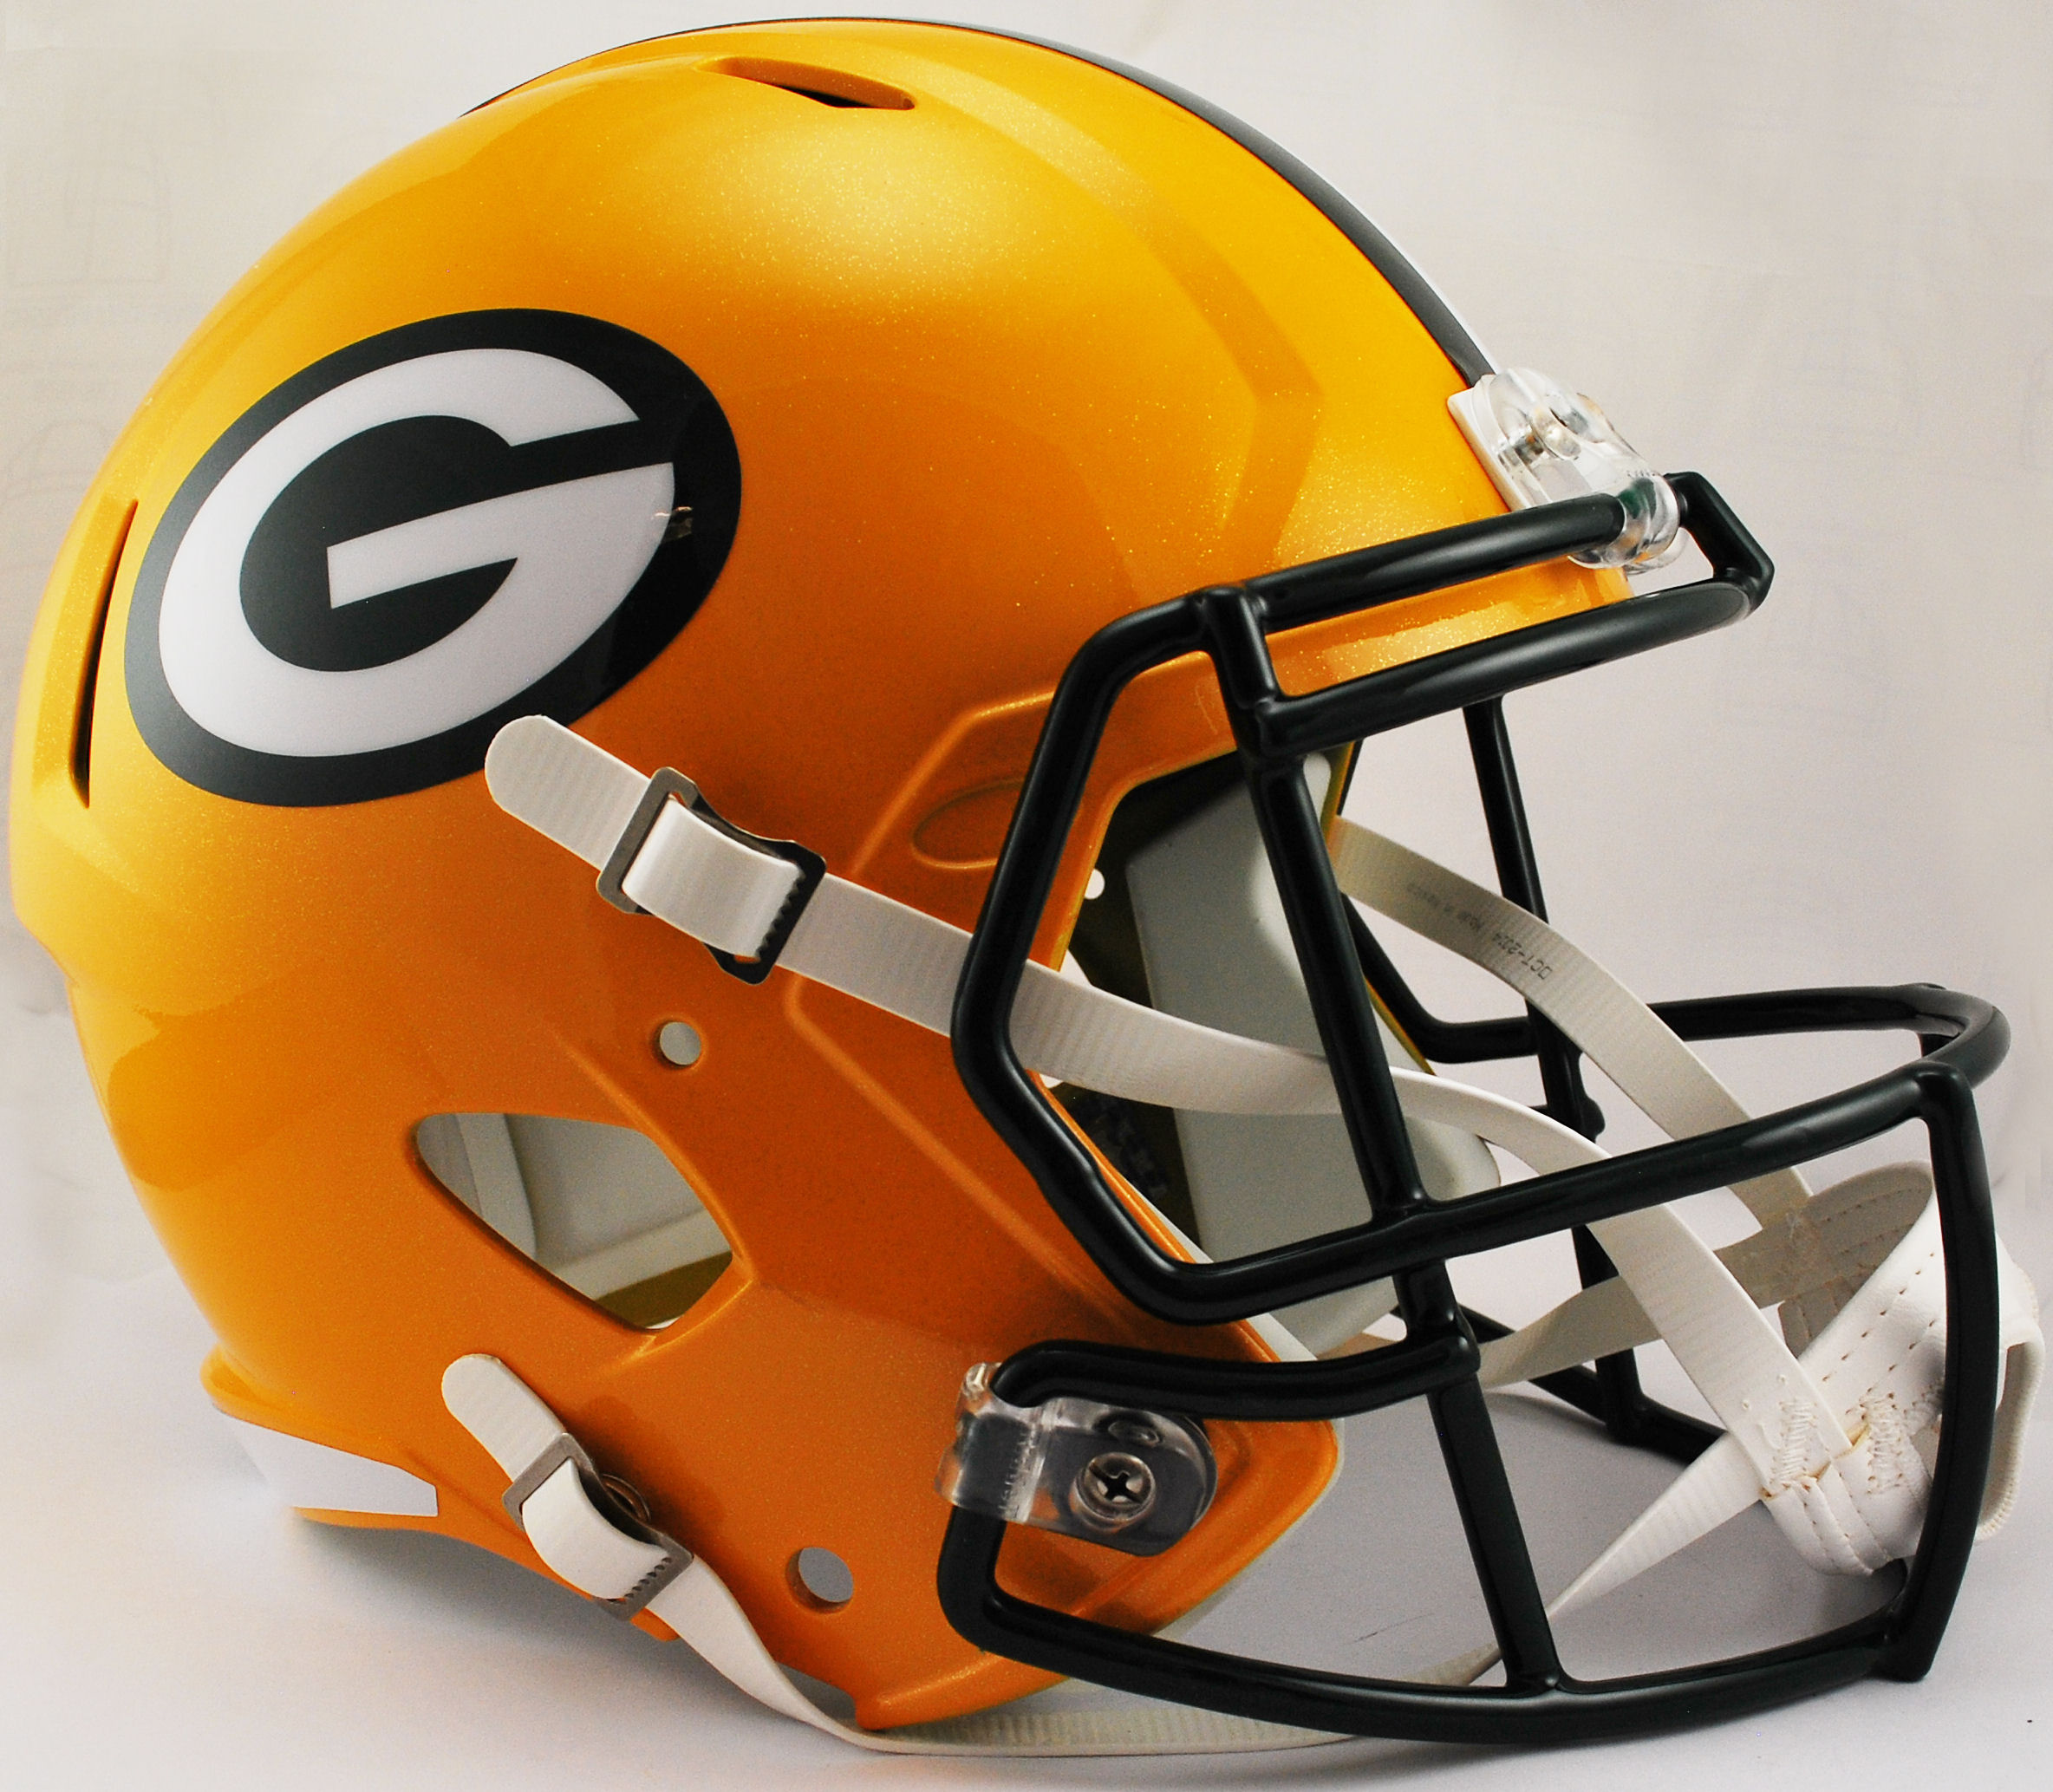 Green Bay Packers Speed Replica Football Helmet